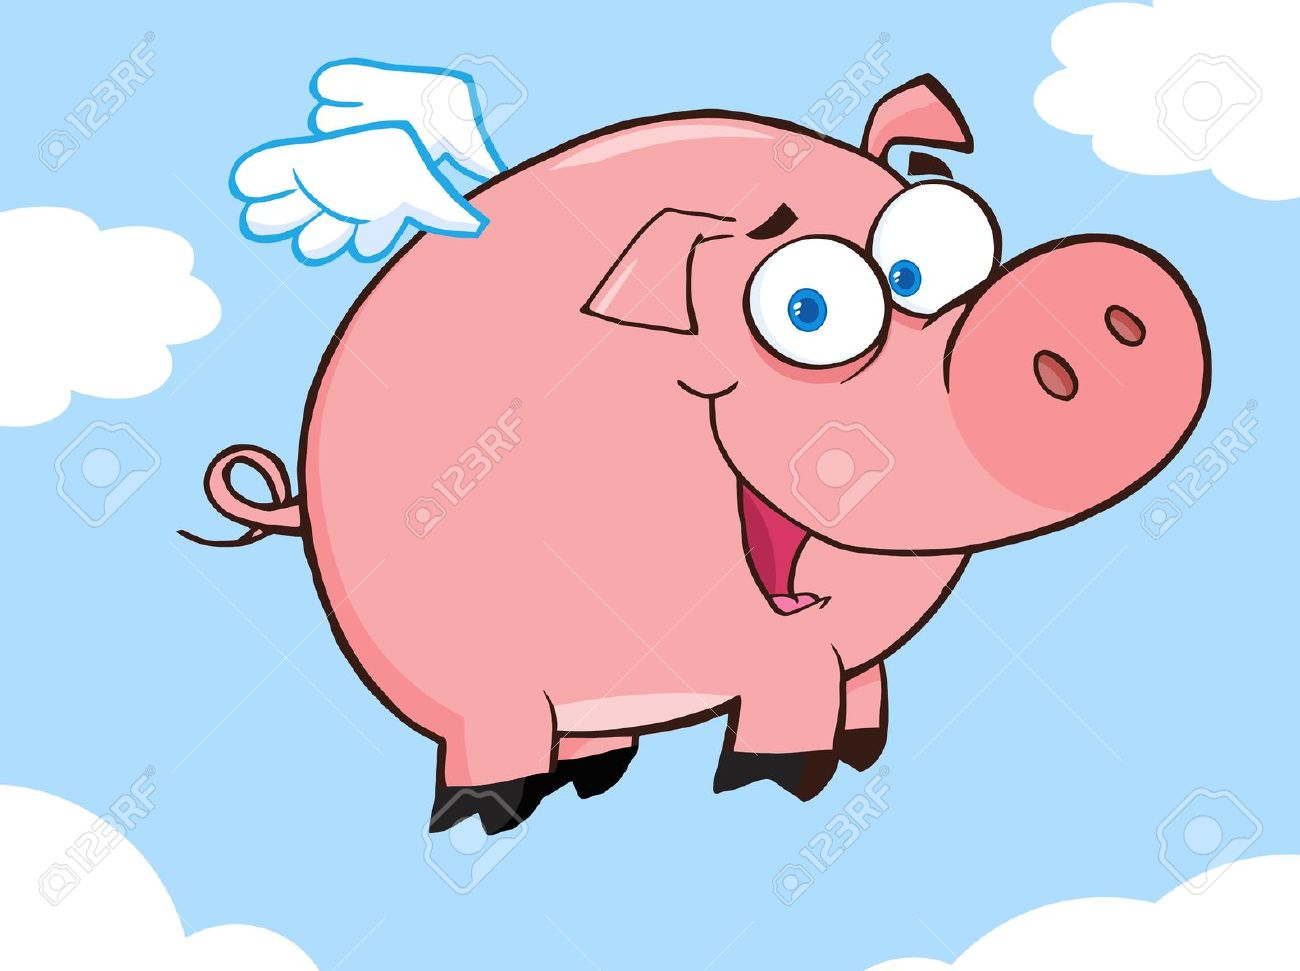 358 Lucky Pig Stock Illustrations, Cliparts And Royalty Free Lucky.